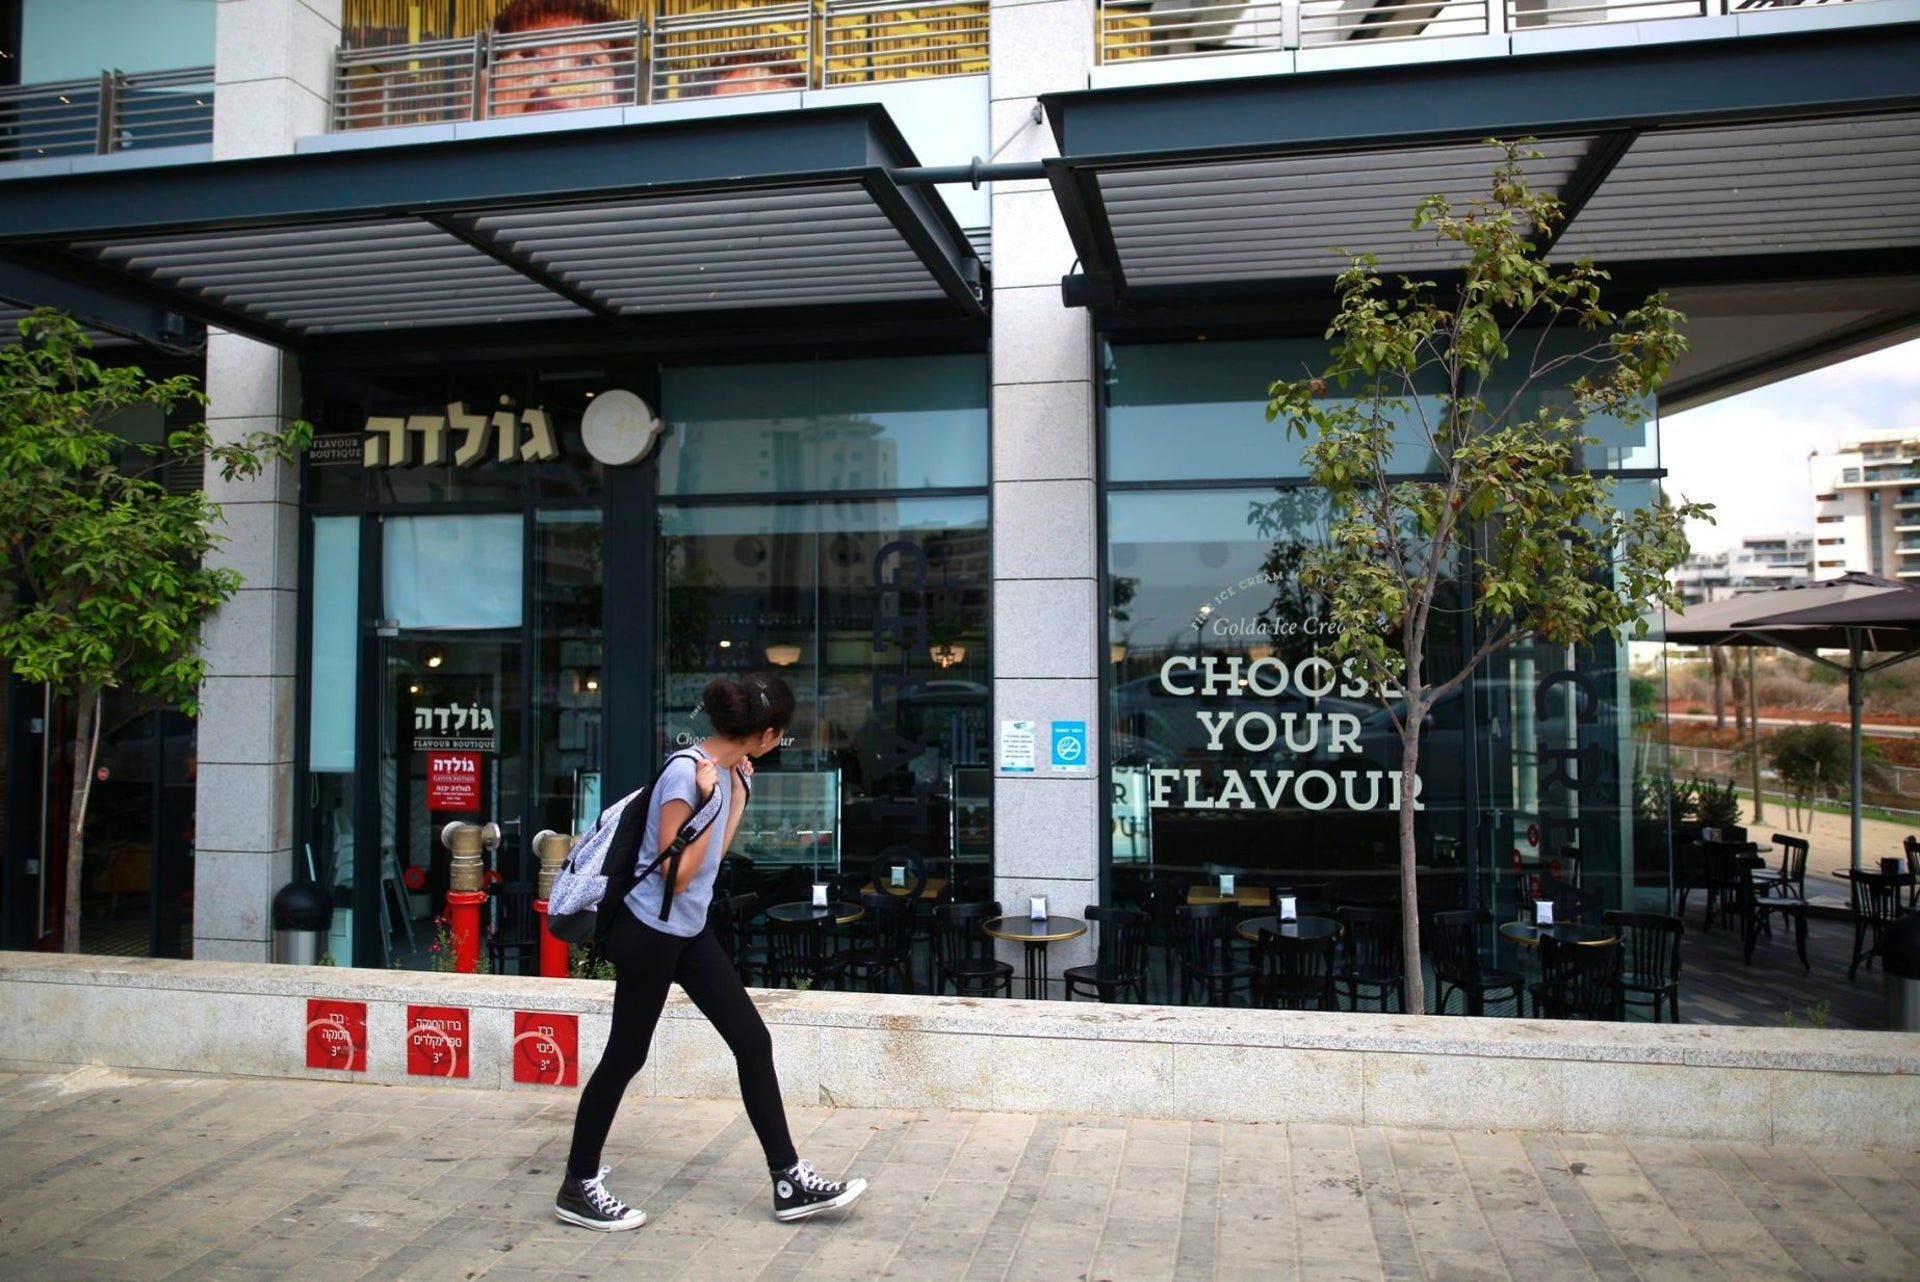 The Golda ice cream parlor in Yavneh. Defied calls to close on Shabbat.